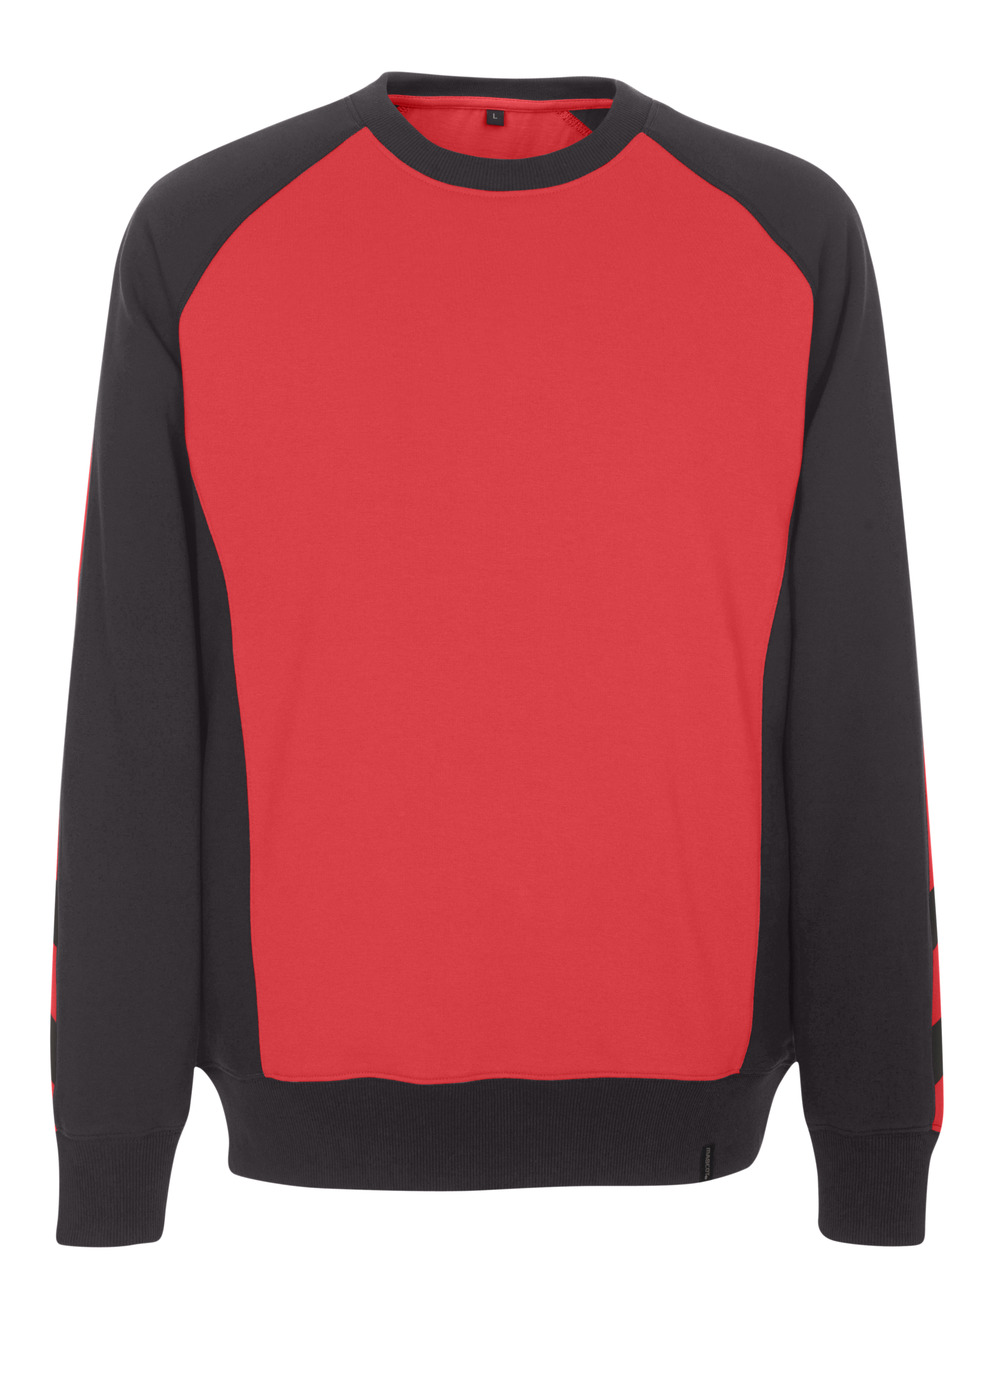 50570-962-0209 Sweatshirt - red/black